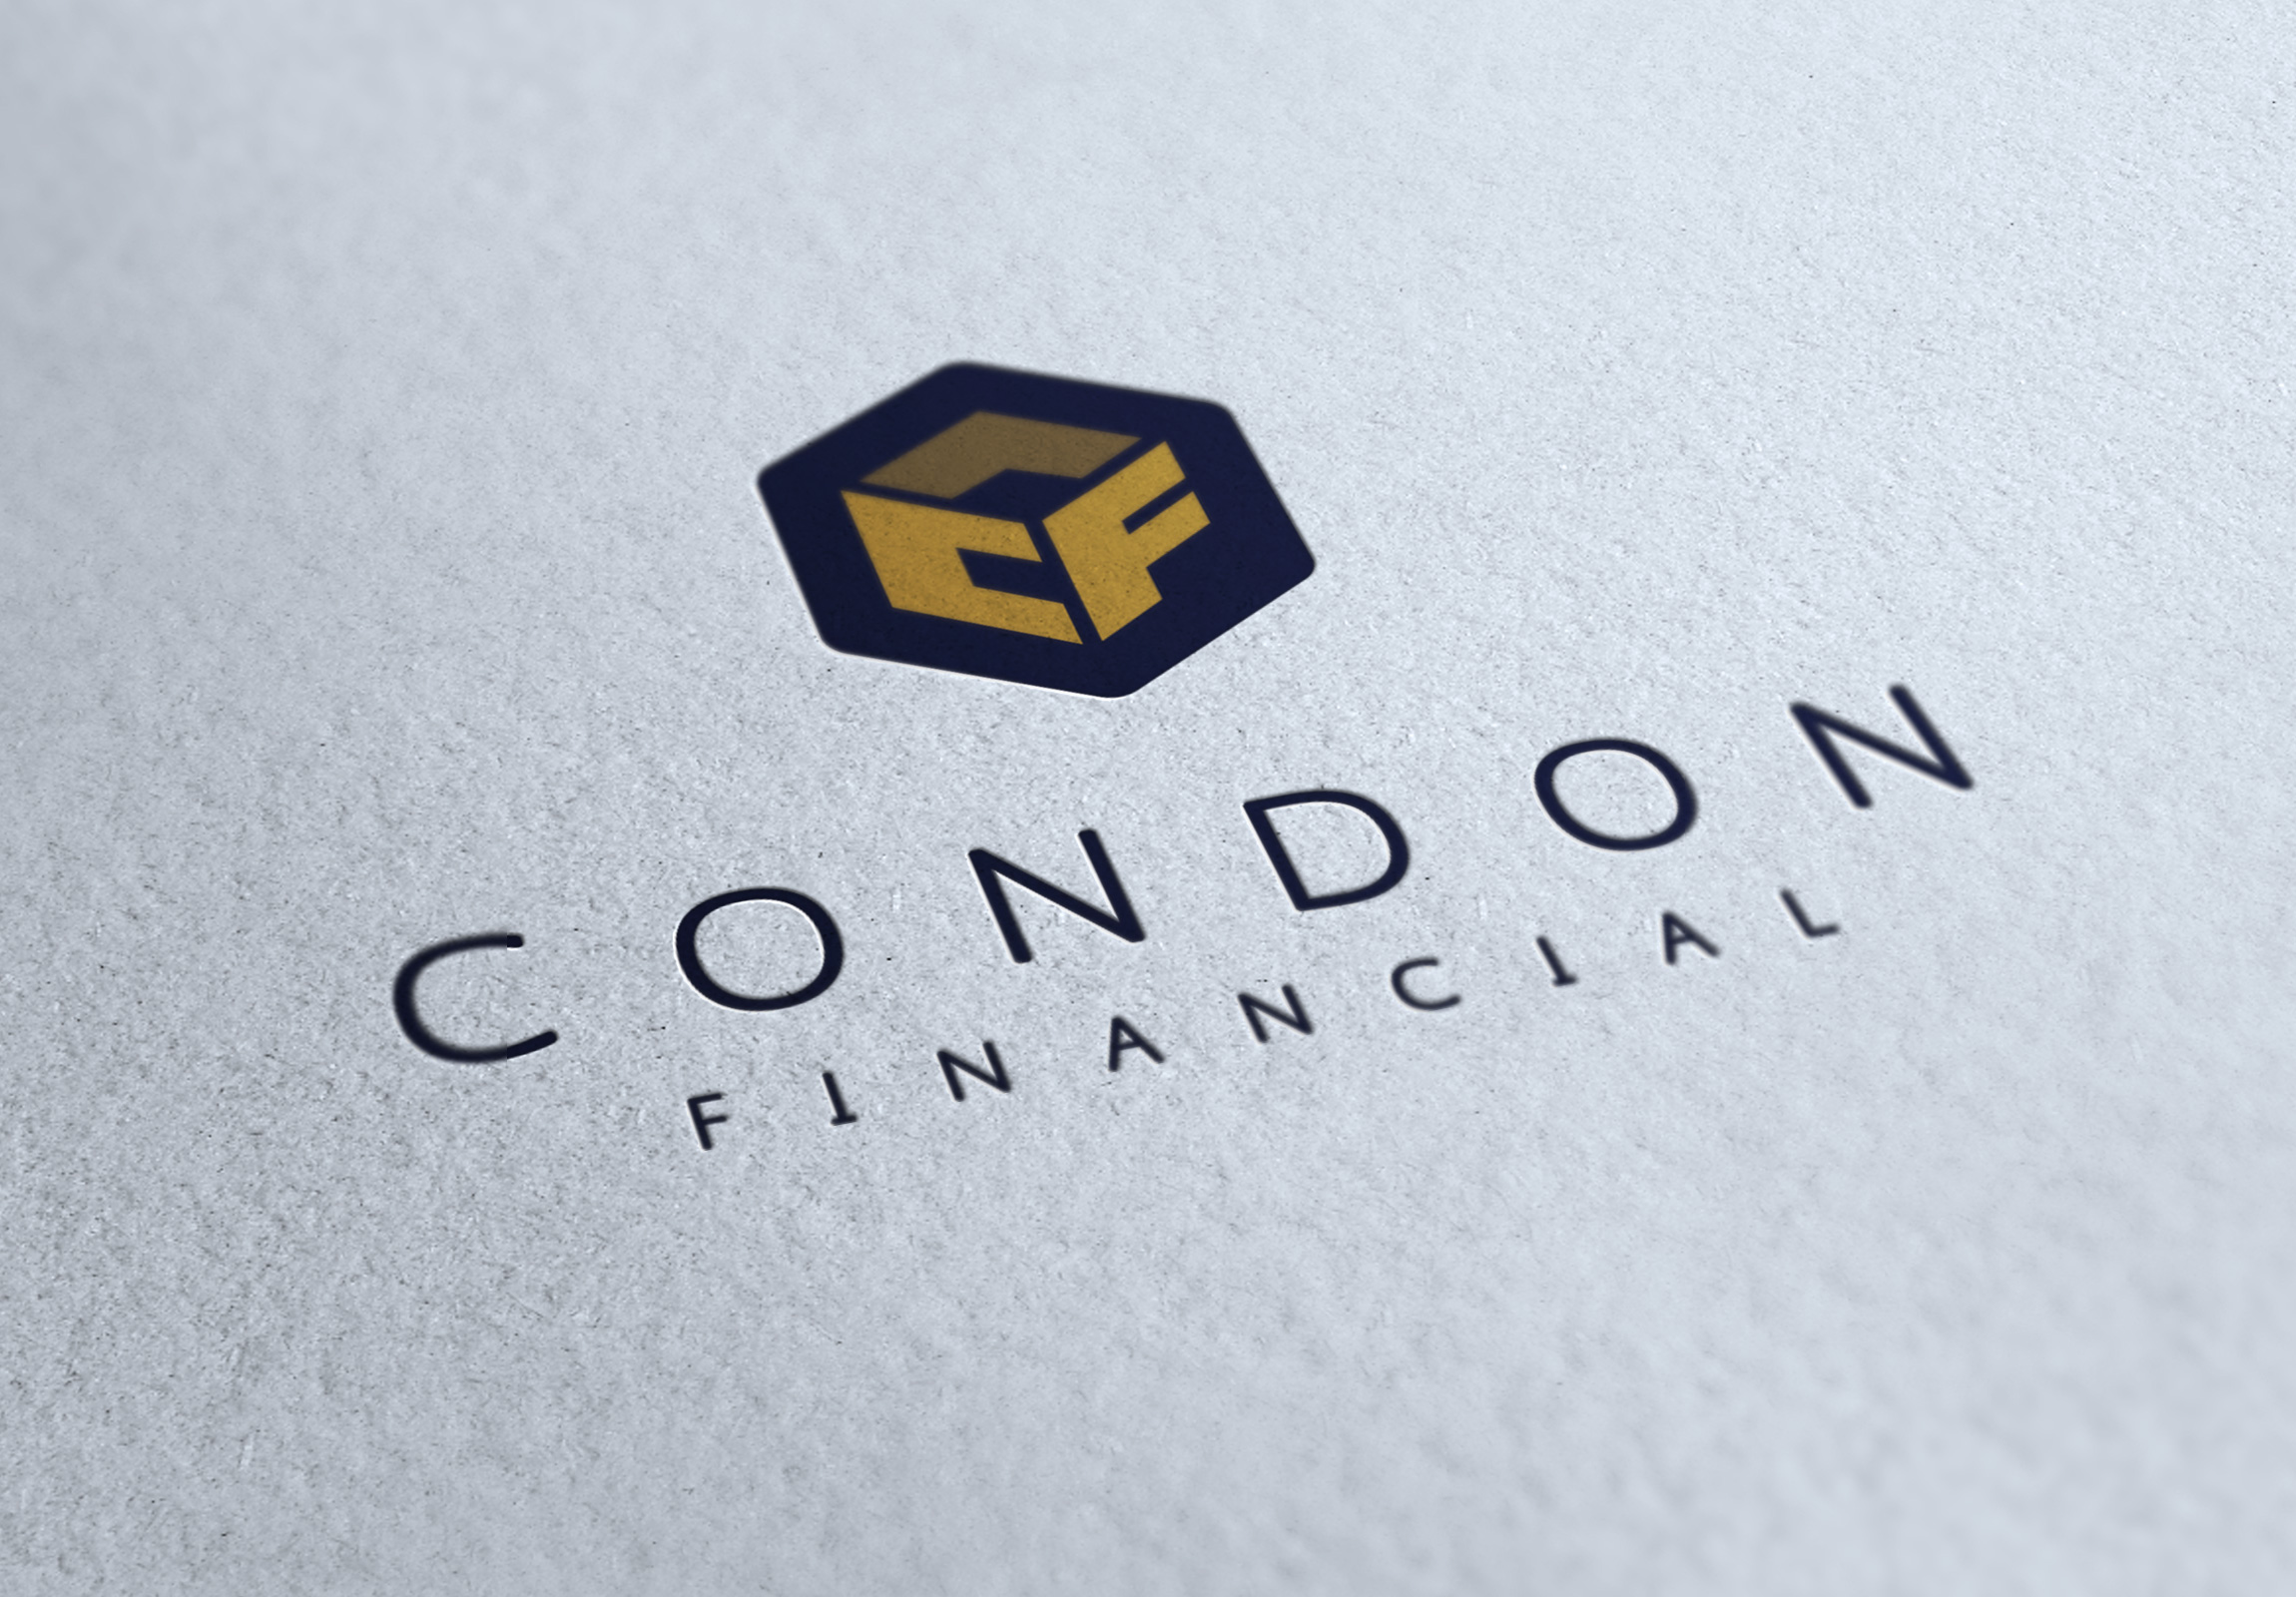 Condon-FInancial_logo